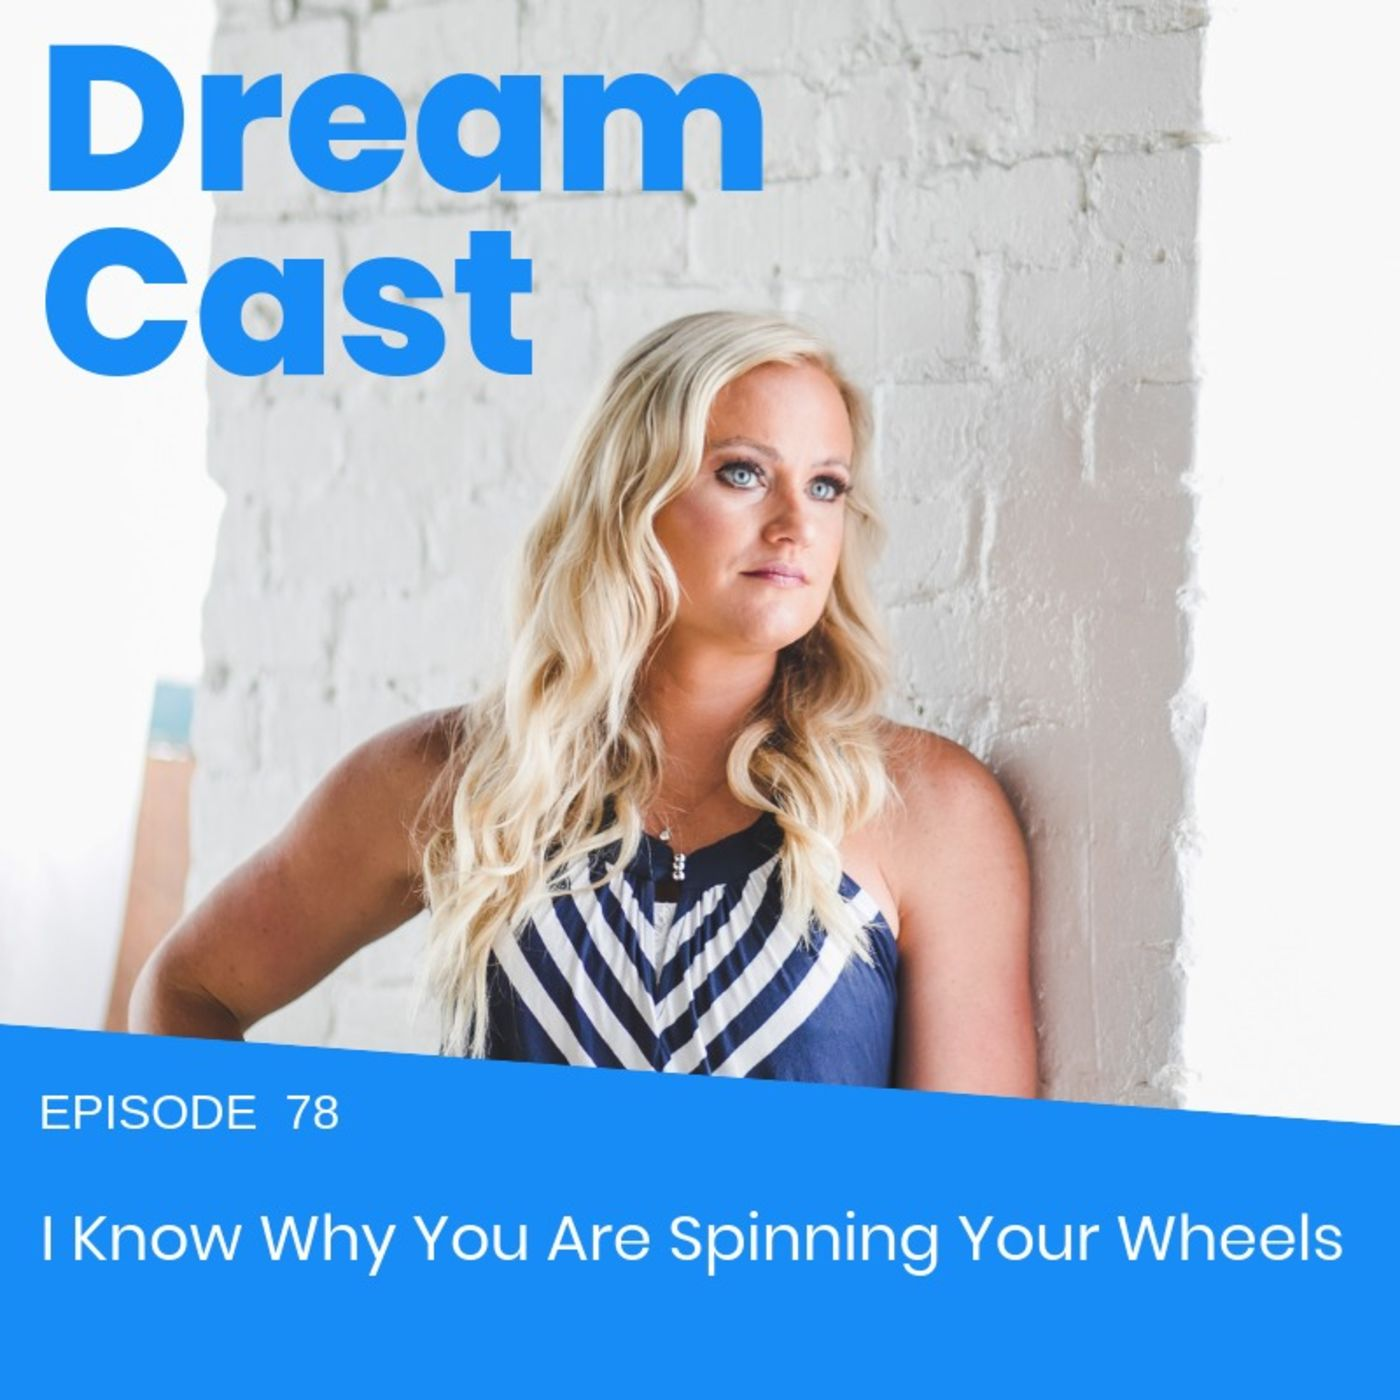 Episode 78 - I Know Why You Are Spinning Your Wheels